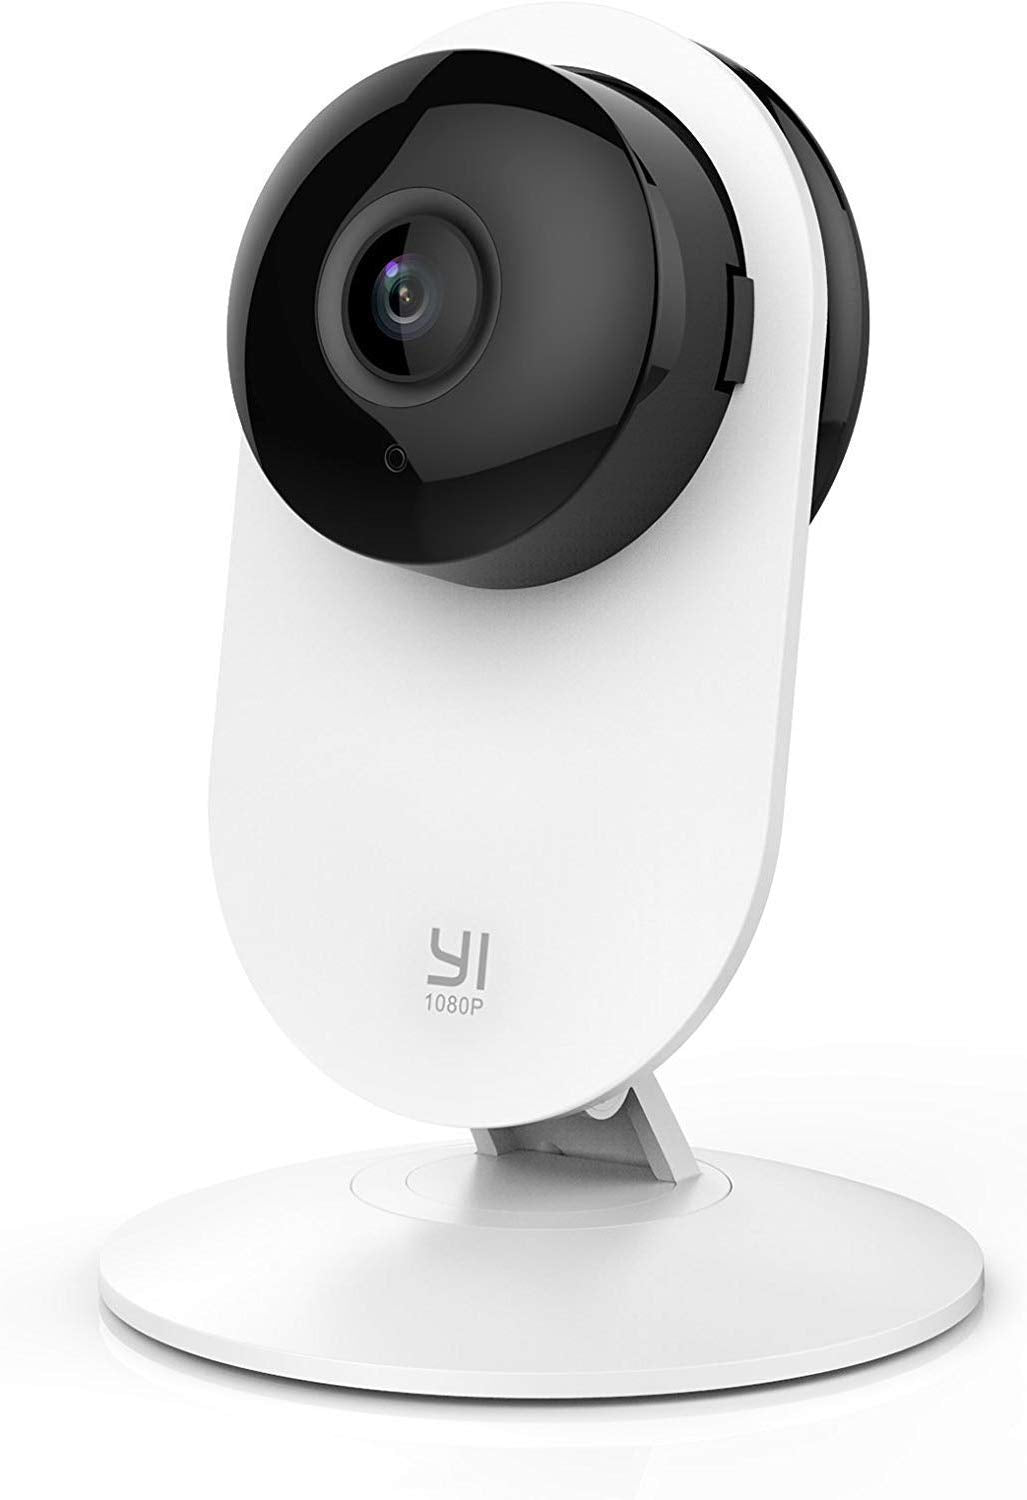 1080p Home Camera, Indoor Wireless IP Security Surveillance System